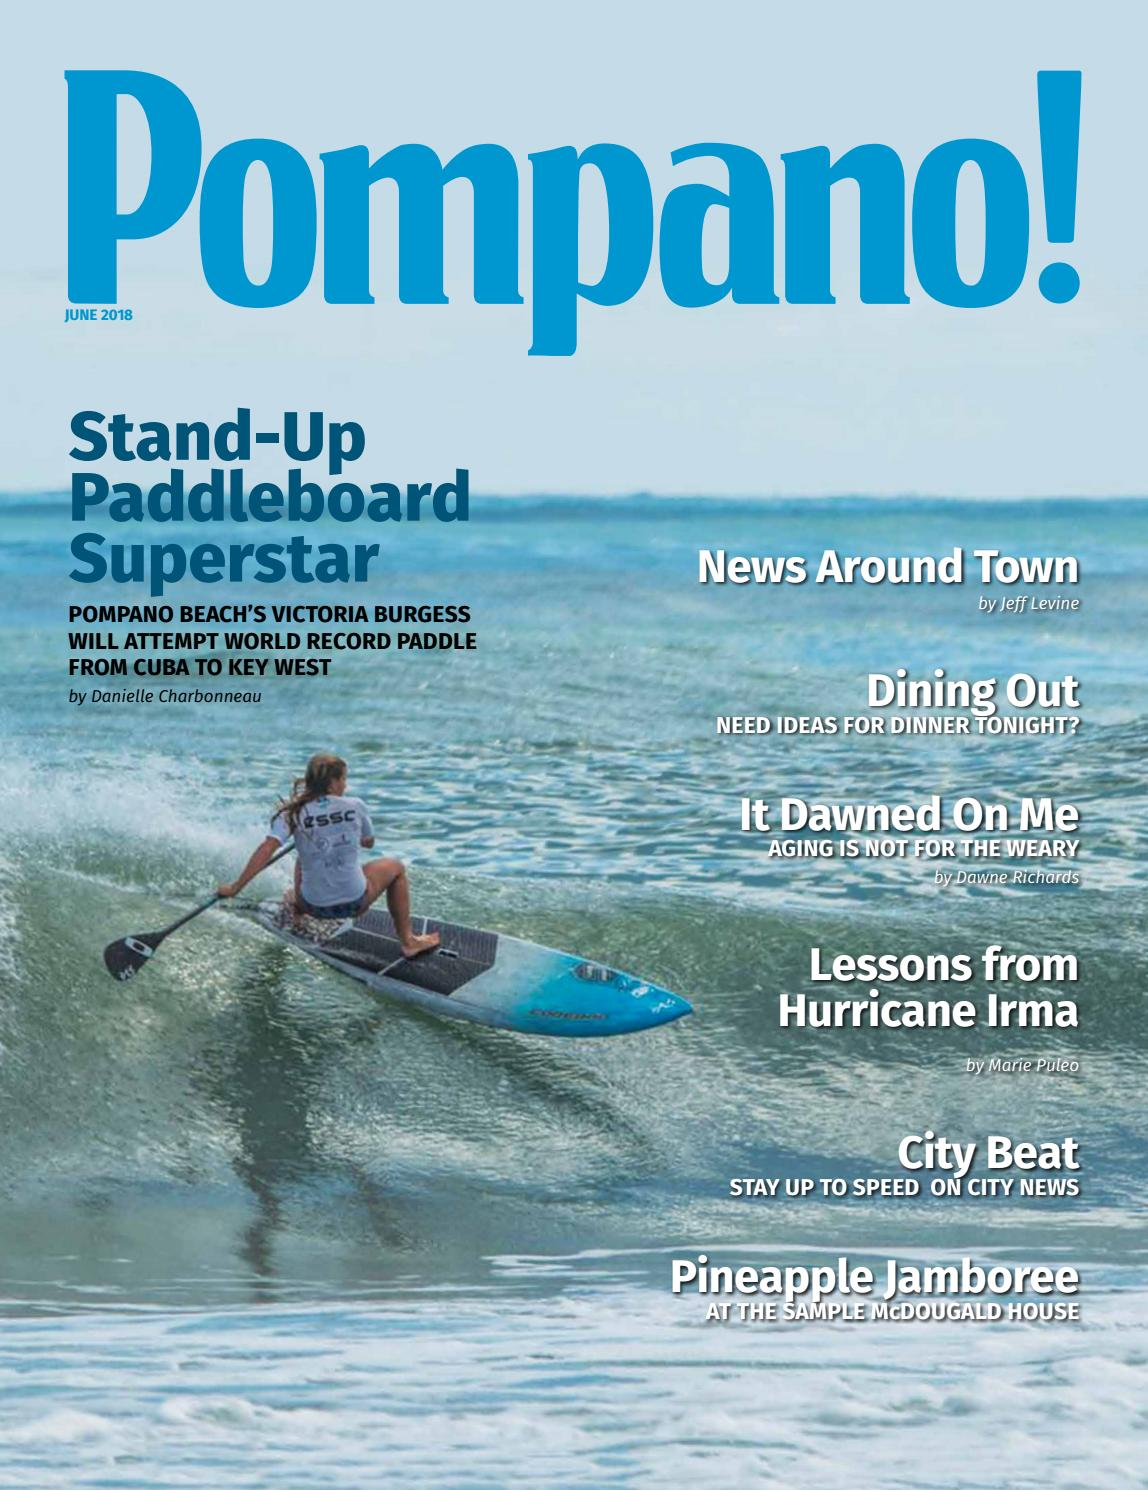 Pompano! Magazine June 2018 by Point! Publishing - issuu